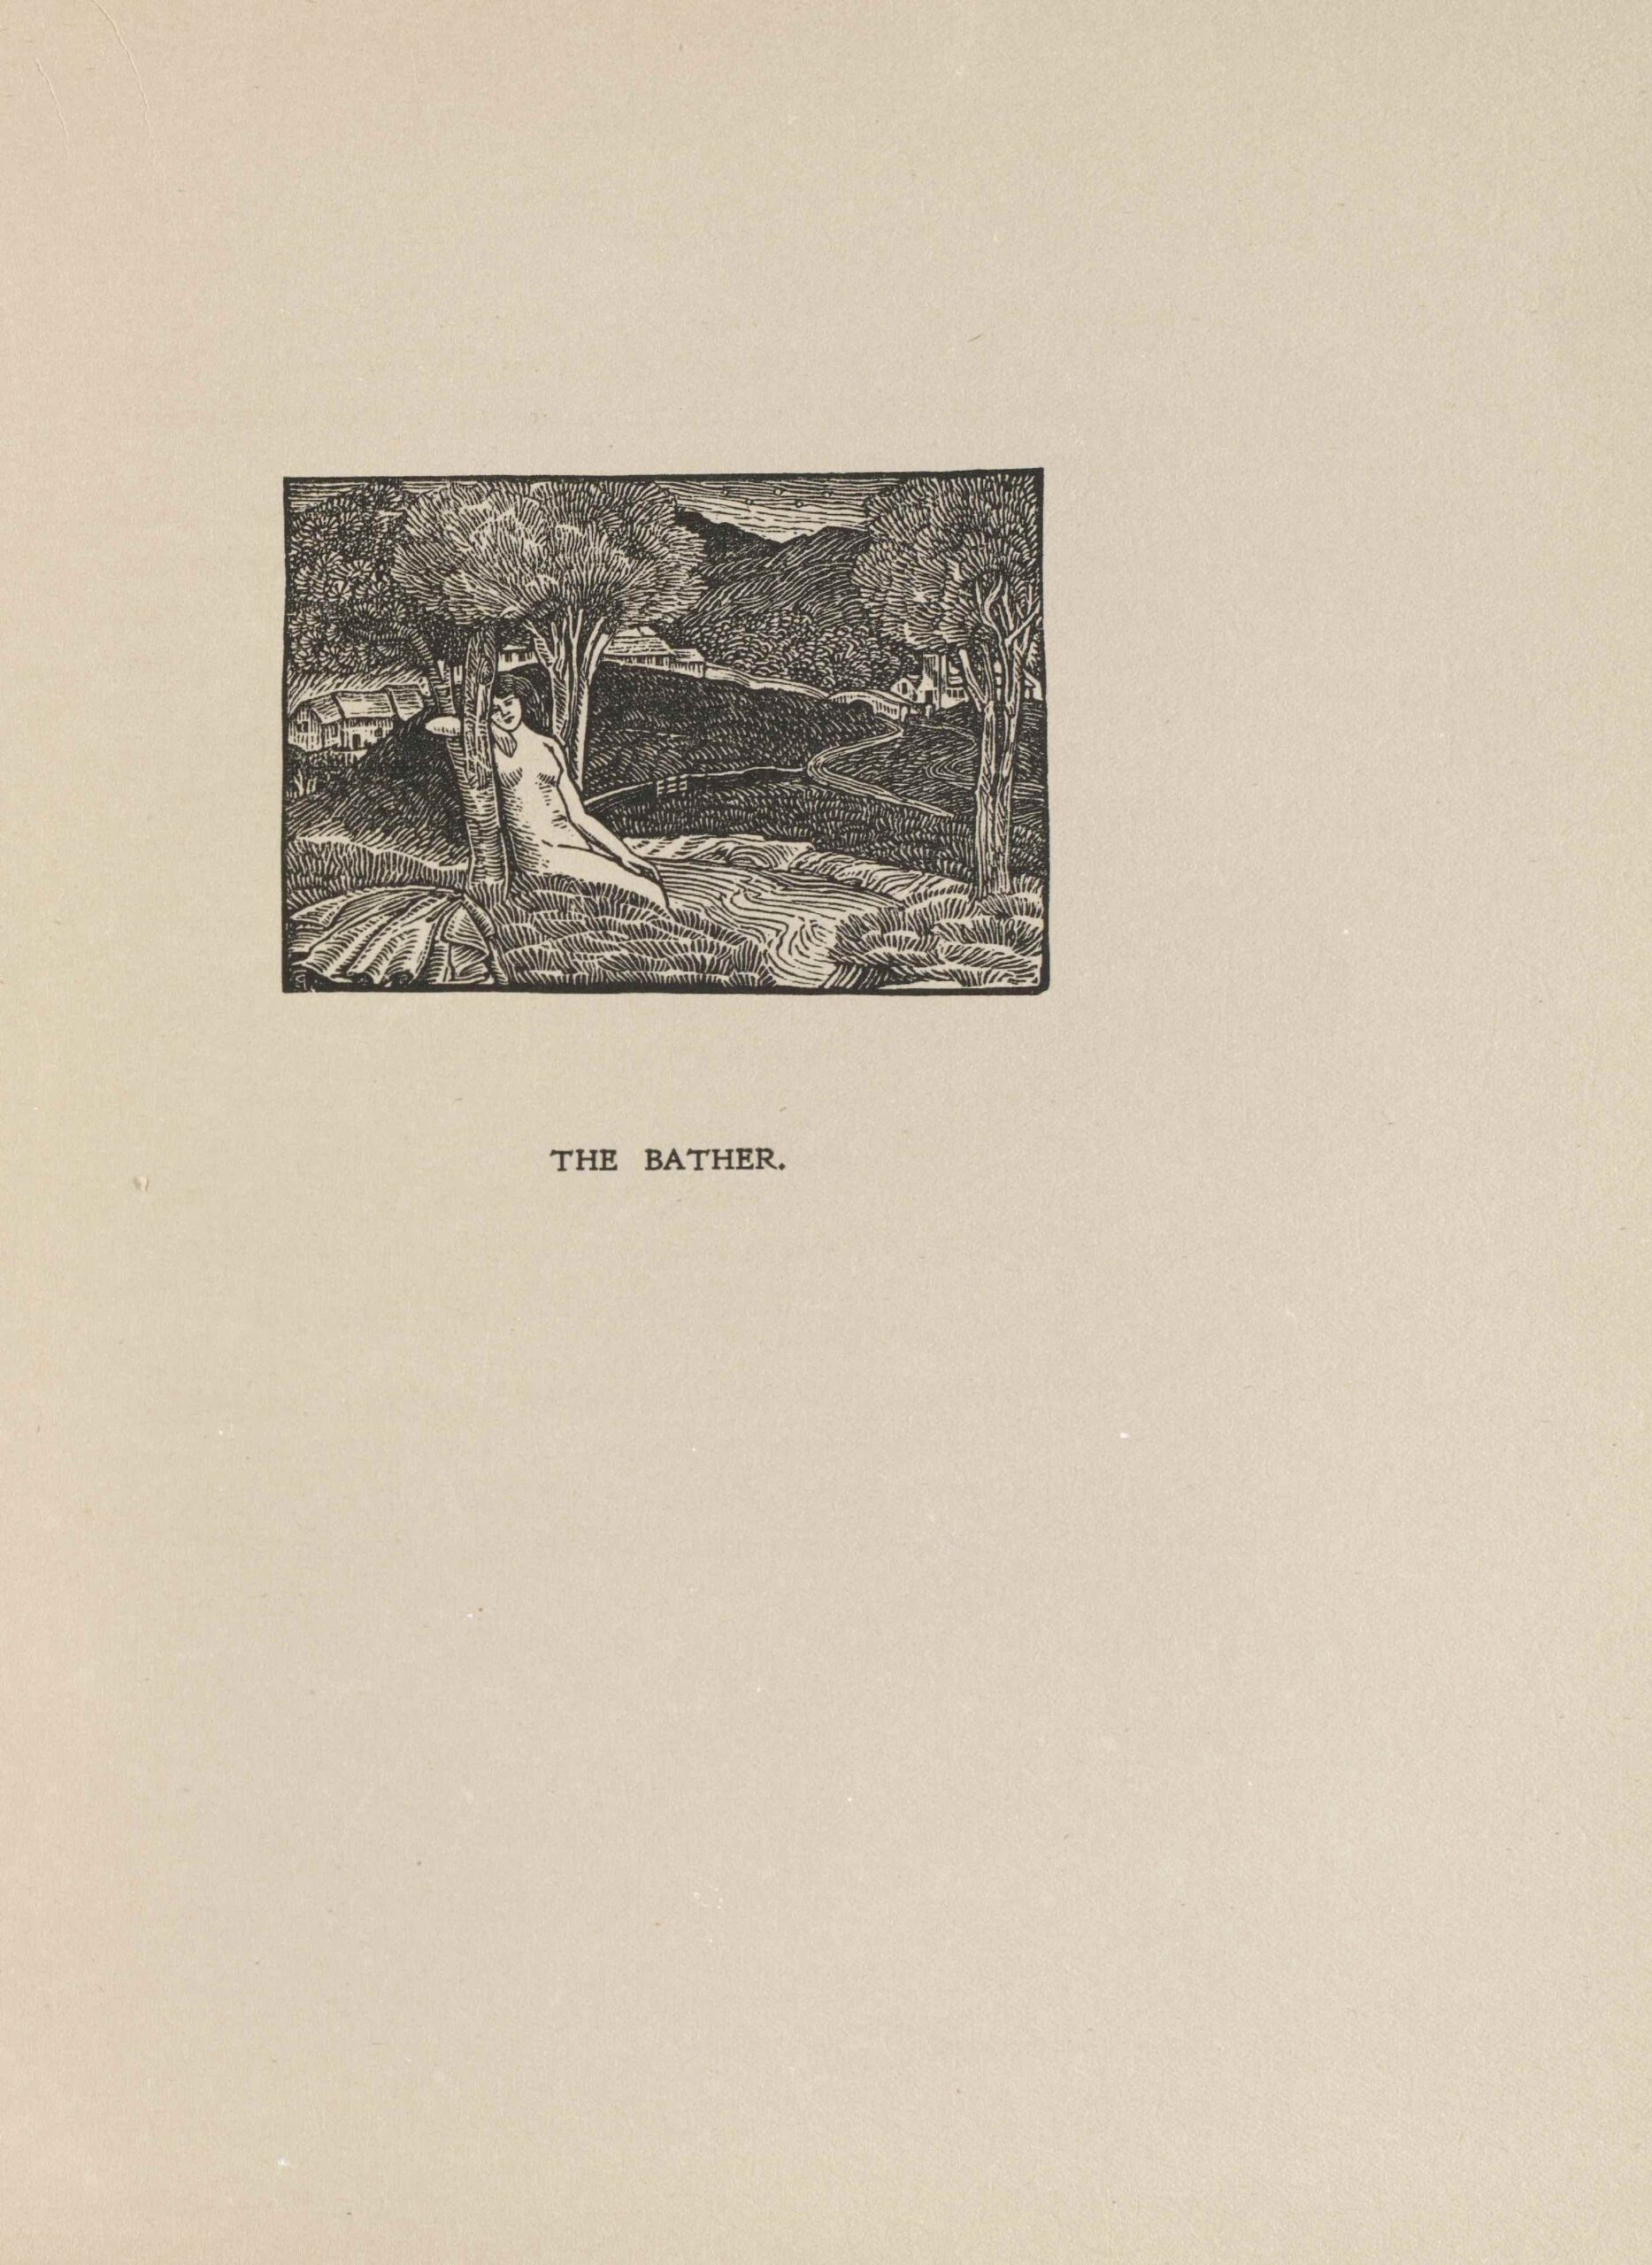 The image is in landscape orientation and is centered in the upper third of the page. The image is printed in black ink. In the left foreground, a naked woman is seated on a hill with crossed legs. She is leaning on a tree and is resting her head on her arm which is propped up against a branch. The area around her is a hilly landscape with a small stream of water running from the center foreground to the left background. Two large trees stand on each side of the running water. One slightly smaller tree is depicted behind the woman. There are two roads entering the image on the right which lead to the bridges and row of houses in the background. In the far background distance are high hills of grass and plant life, and clouded skies.